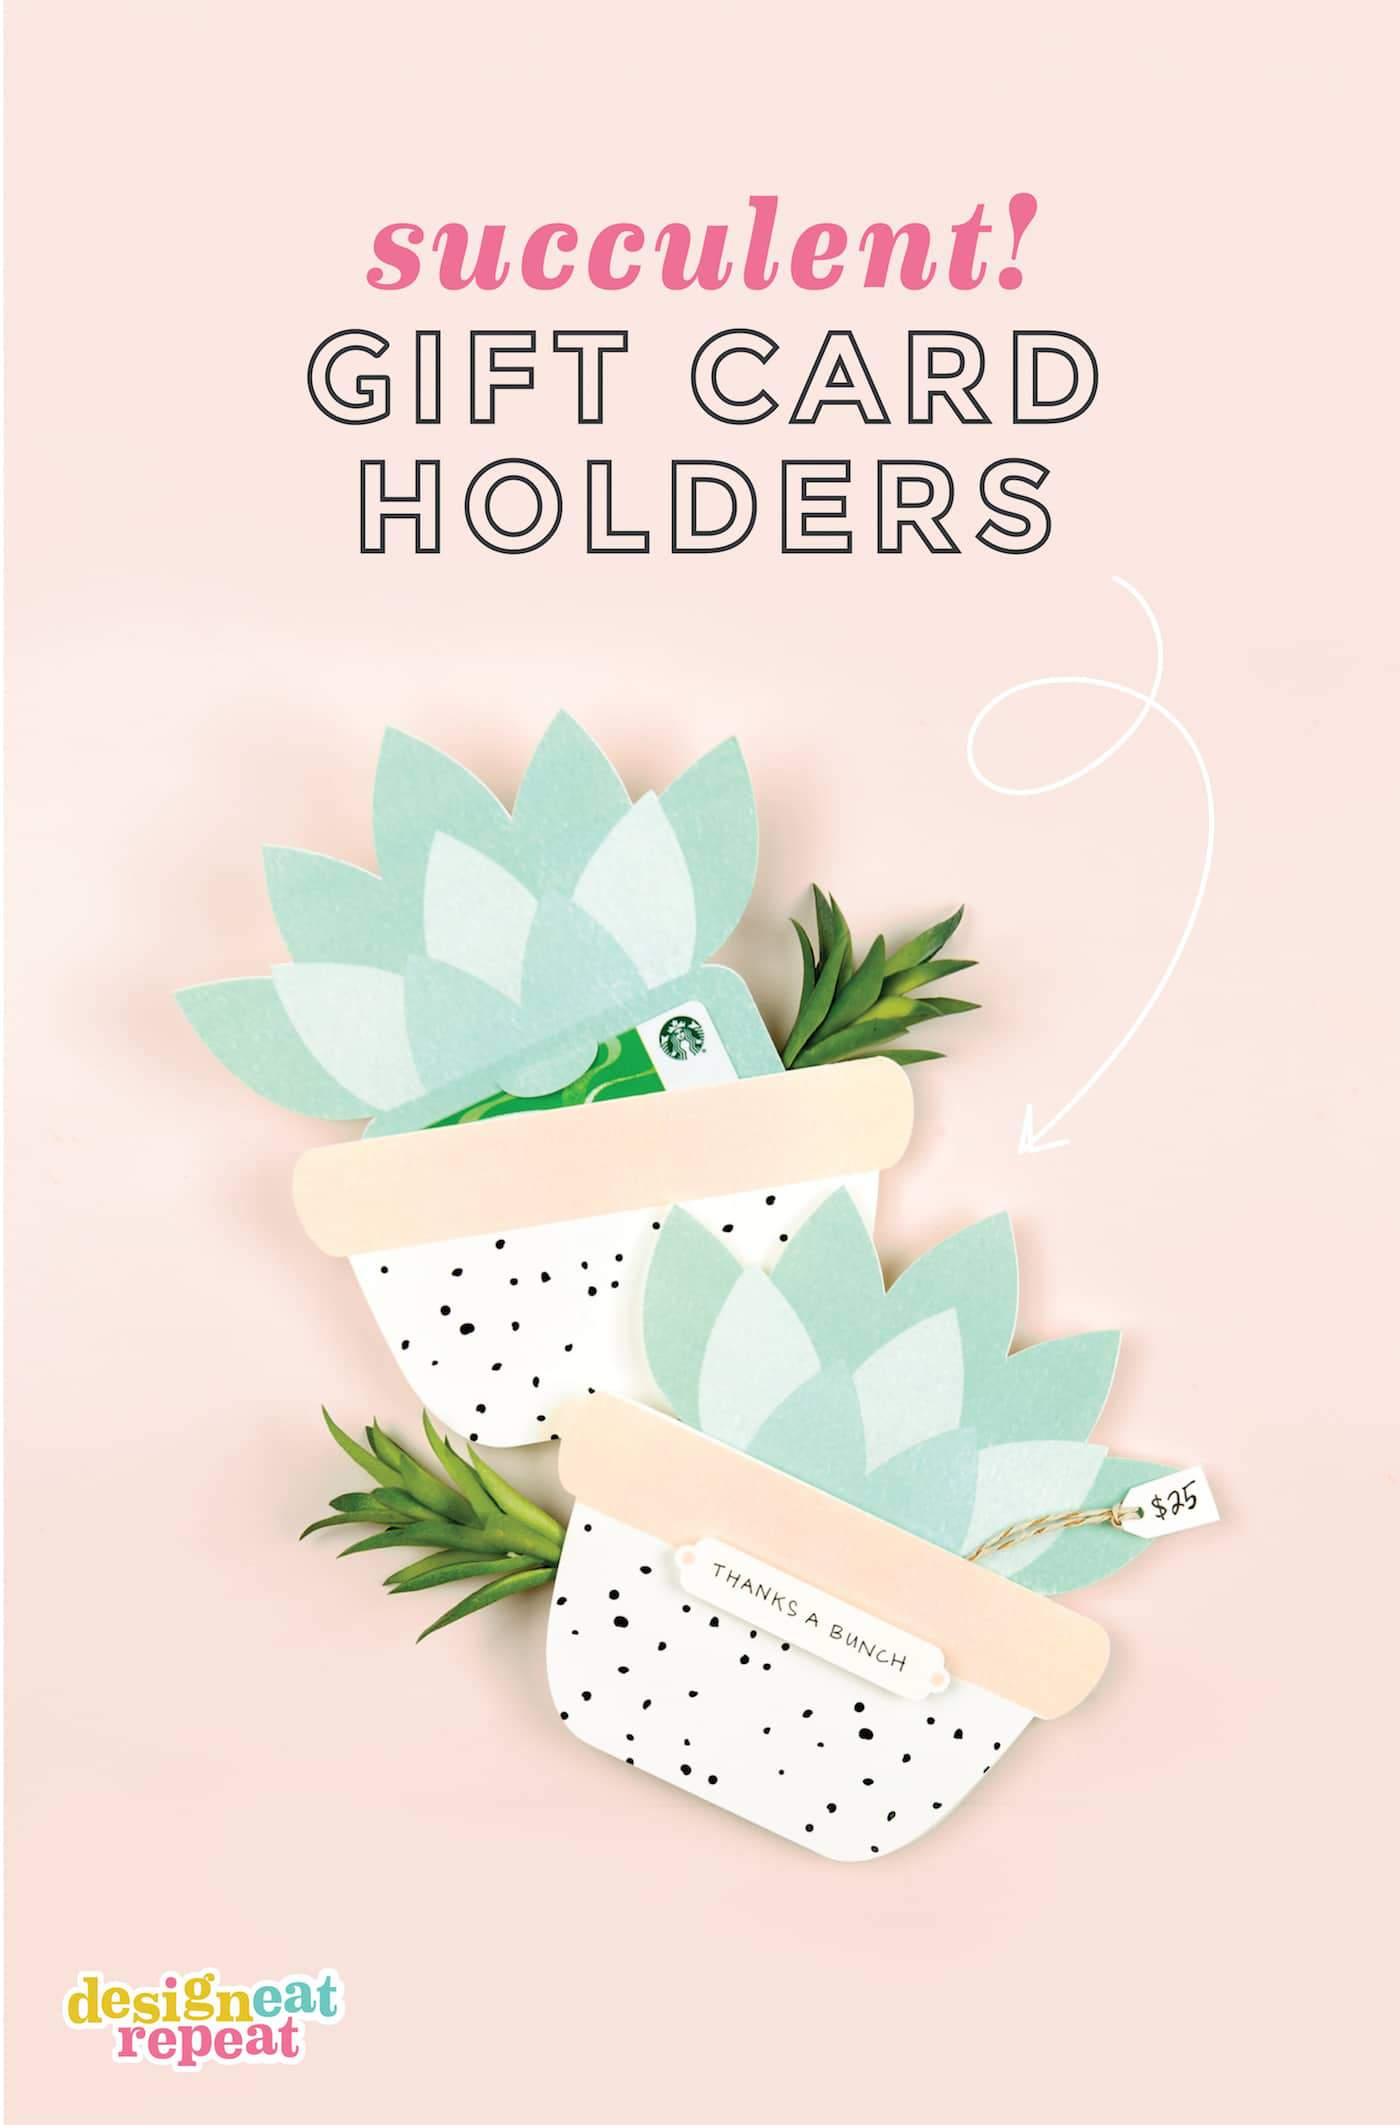 cutest printable gift card holder ever use this free template to make your own succulent